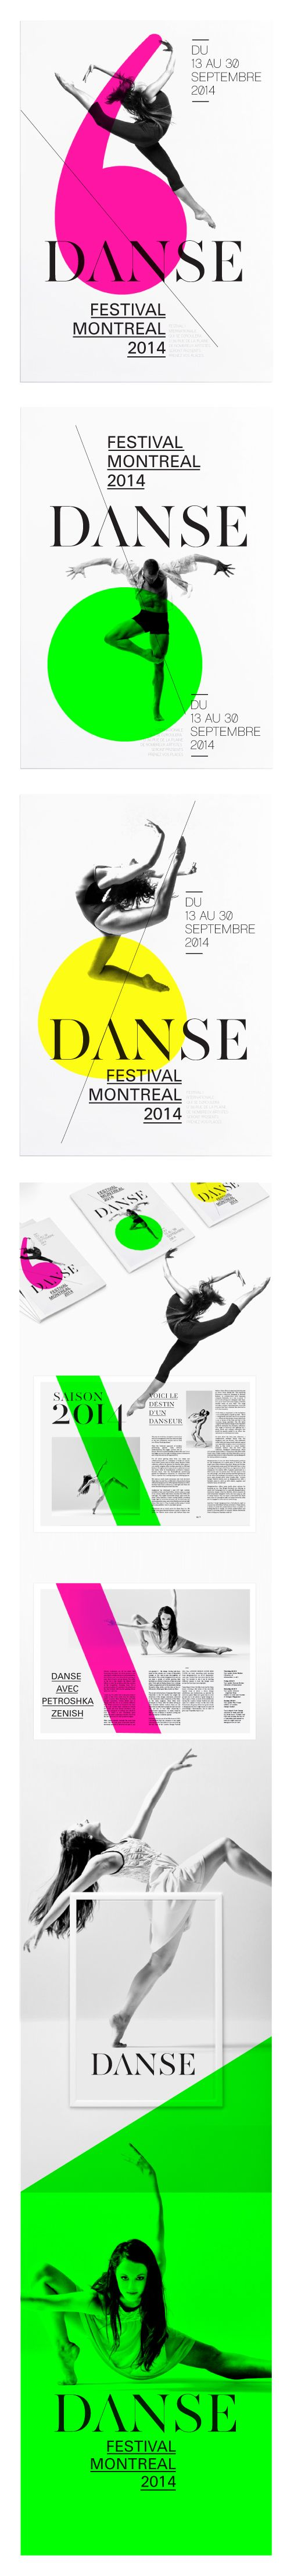 Dance Posters | Editorial